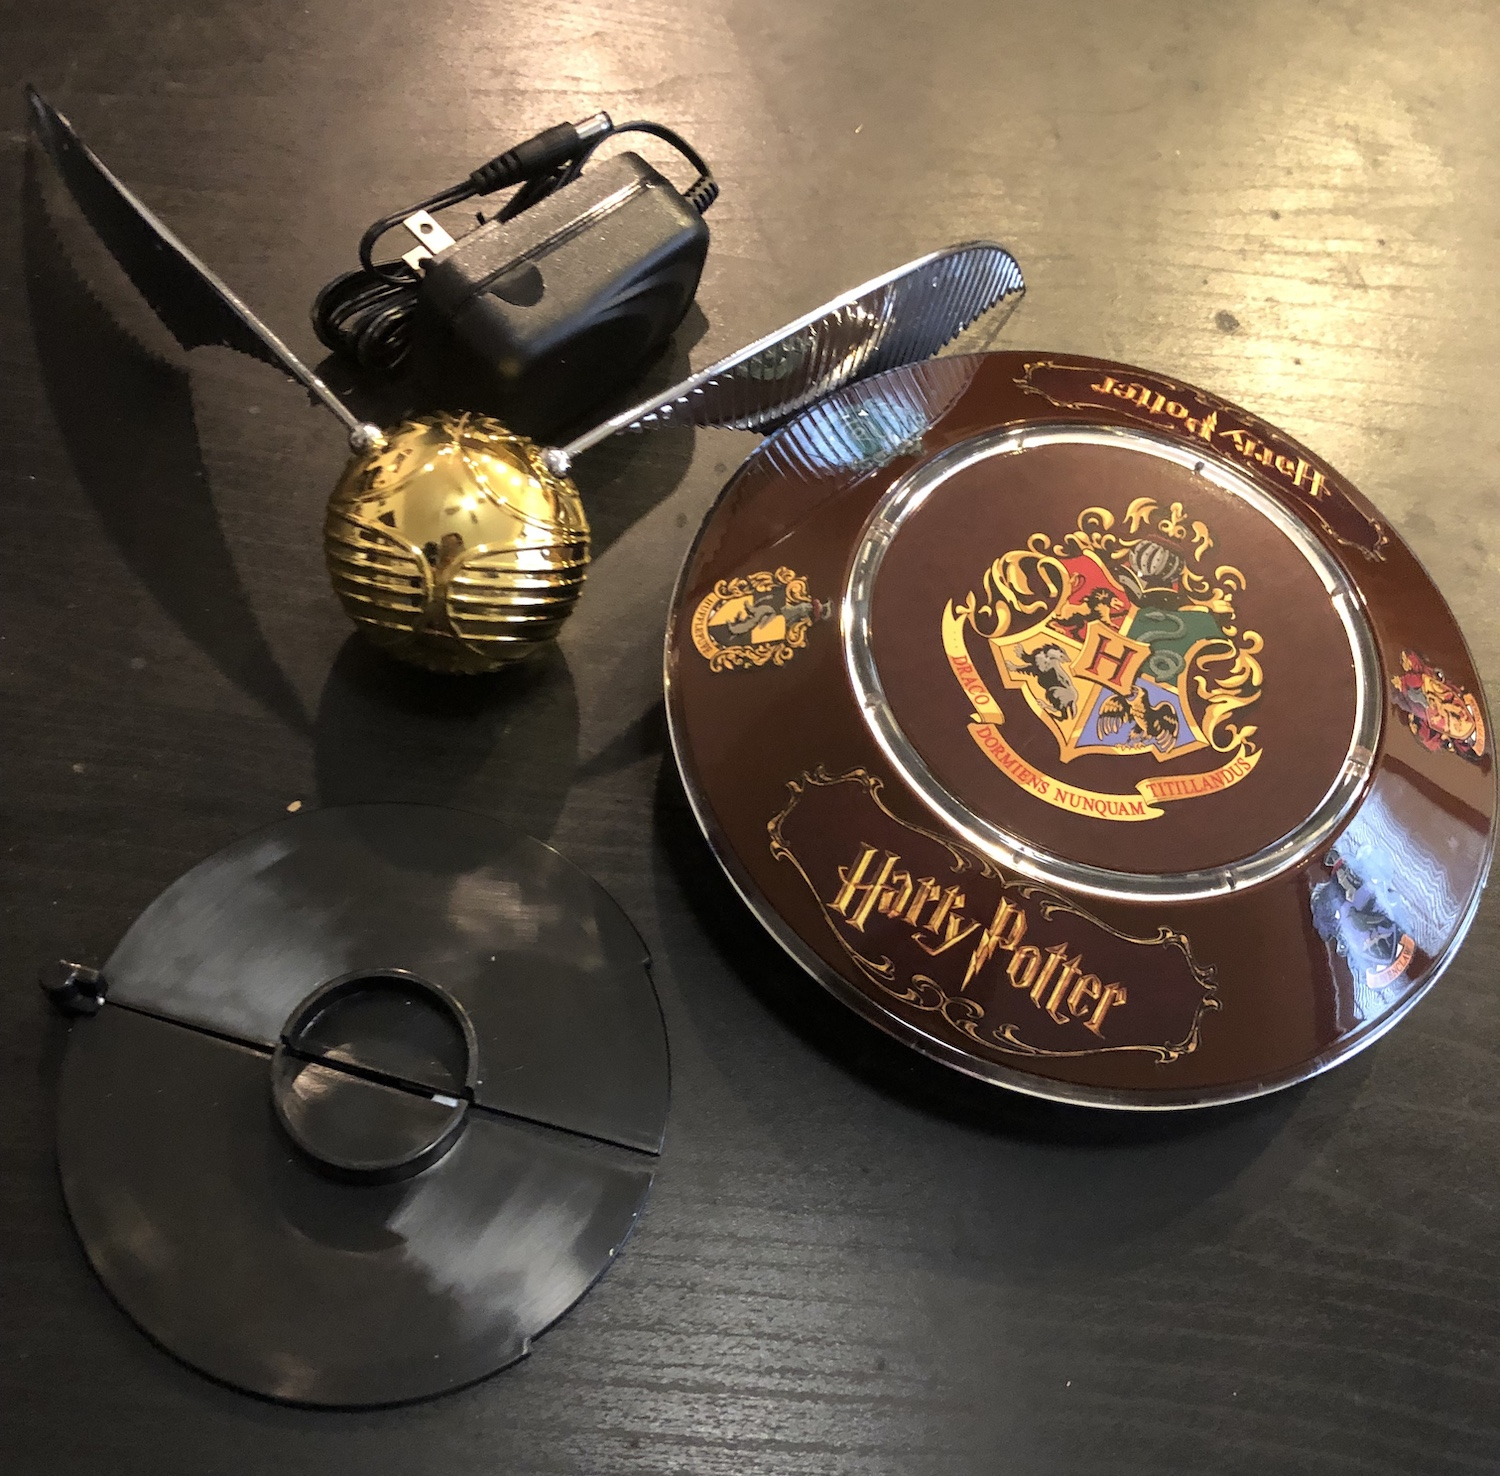 Full GOLDEN SNITCH™ set, including AC adapter, illuminated base, GOLDEN SNITCH™, and a launcher